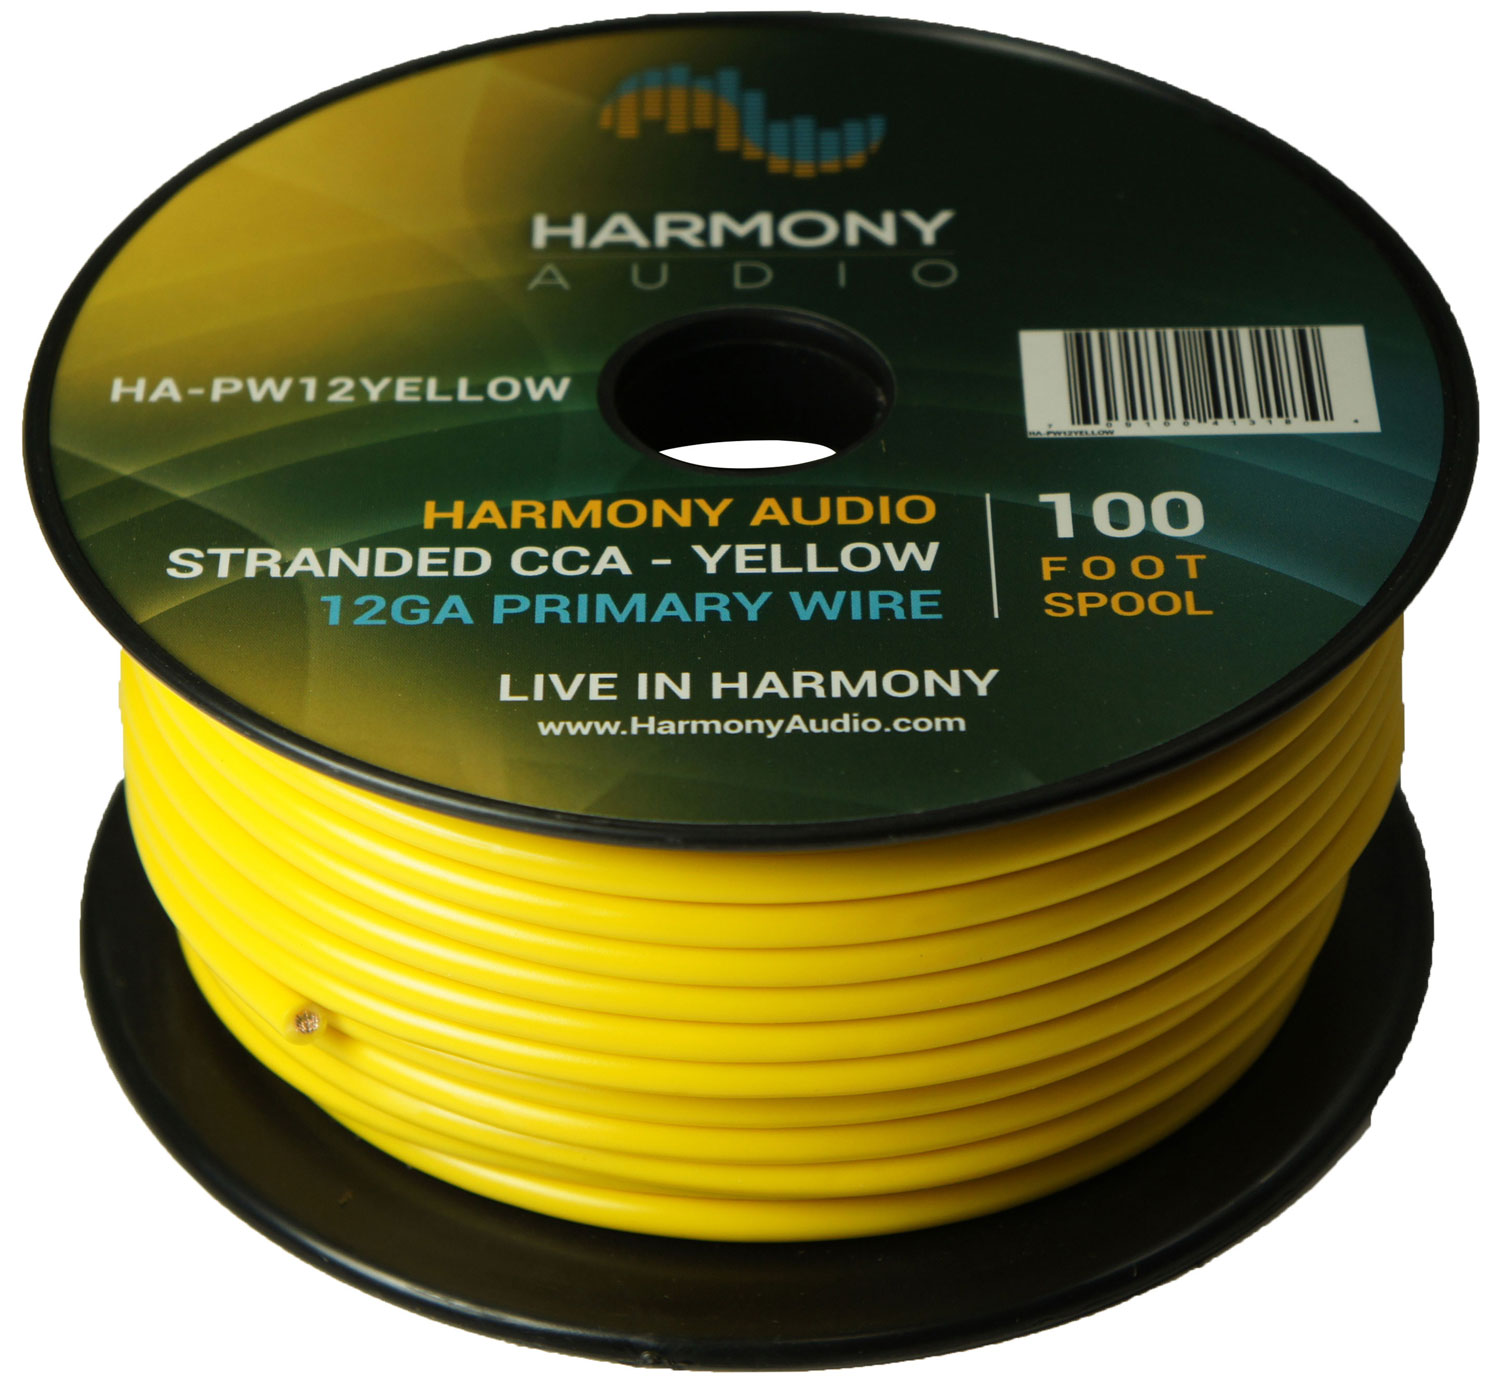 Harmony Audio HA-PW12YELLOW Primary Single Conductor 12 Gauge Yellow Power or Ground Wire Roll 100 Feet Cable for Car Audio / Trailer / Model Train / Remote